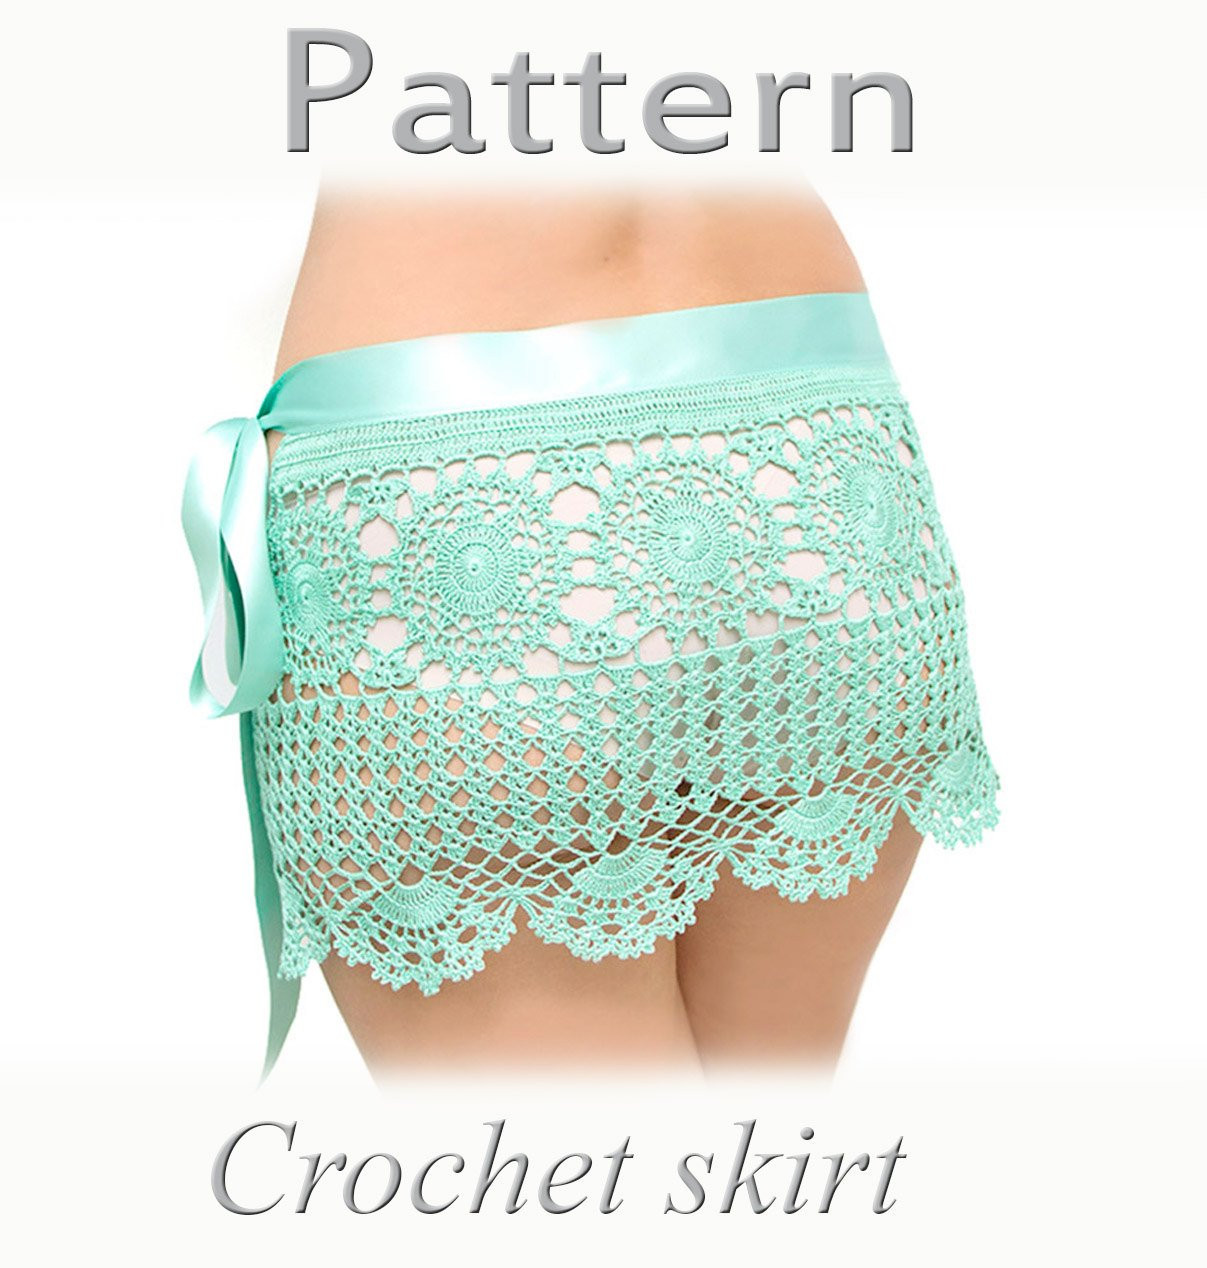 Crochet Skirt Patterns New Crochet Beach Skirt Pattern Pdf Crochet Cover Up Of Fresh 47 Ideas Crochet Skirt Patterns